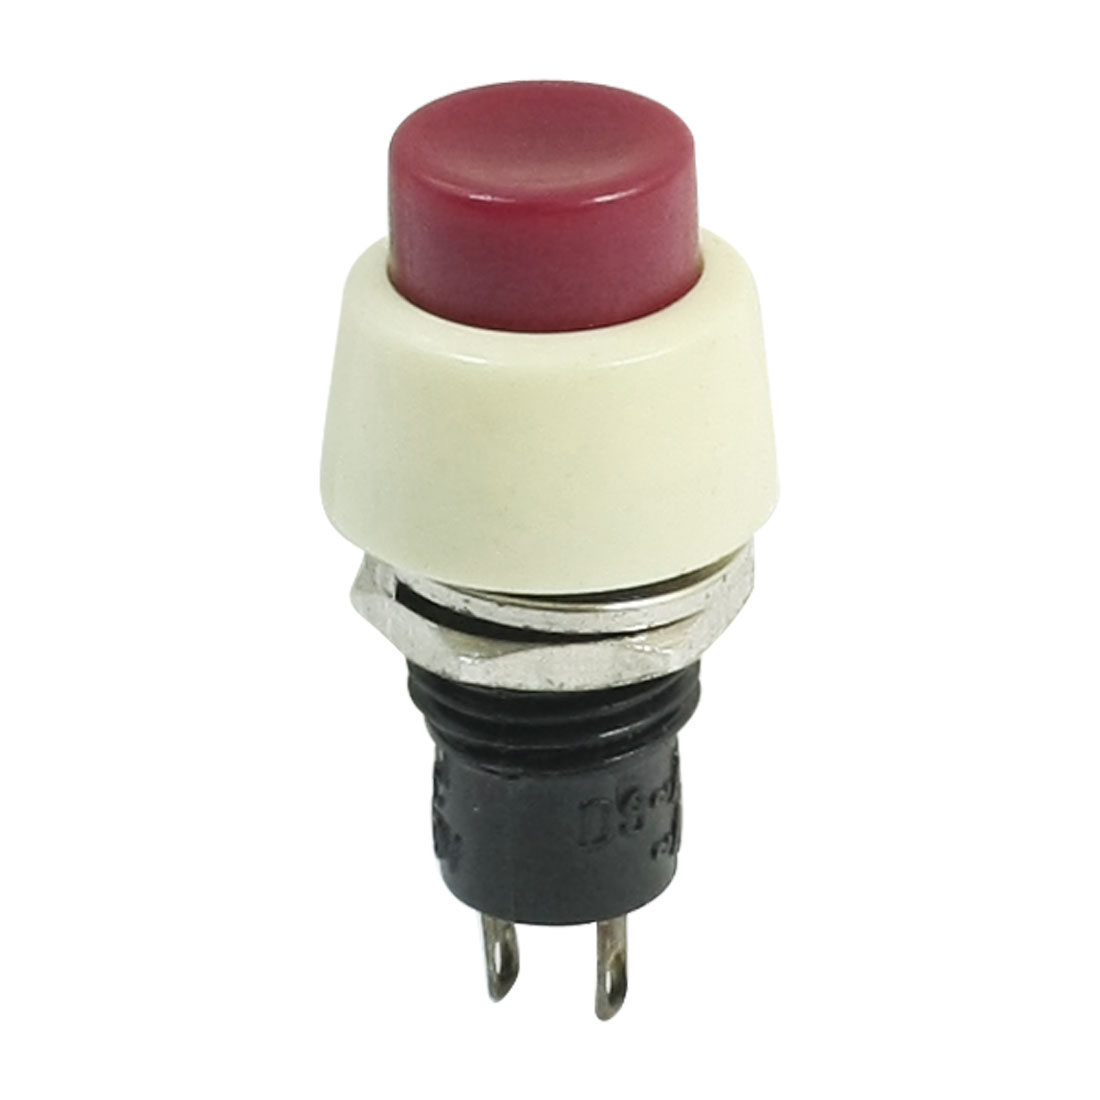 10mm Panel Mounted AC 250V 2A SPST Momentary Push Button Switch Red